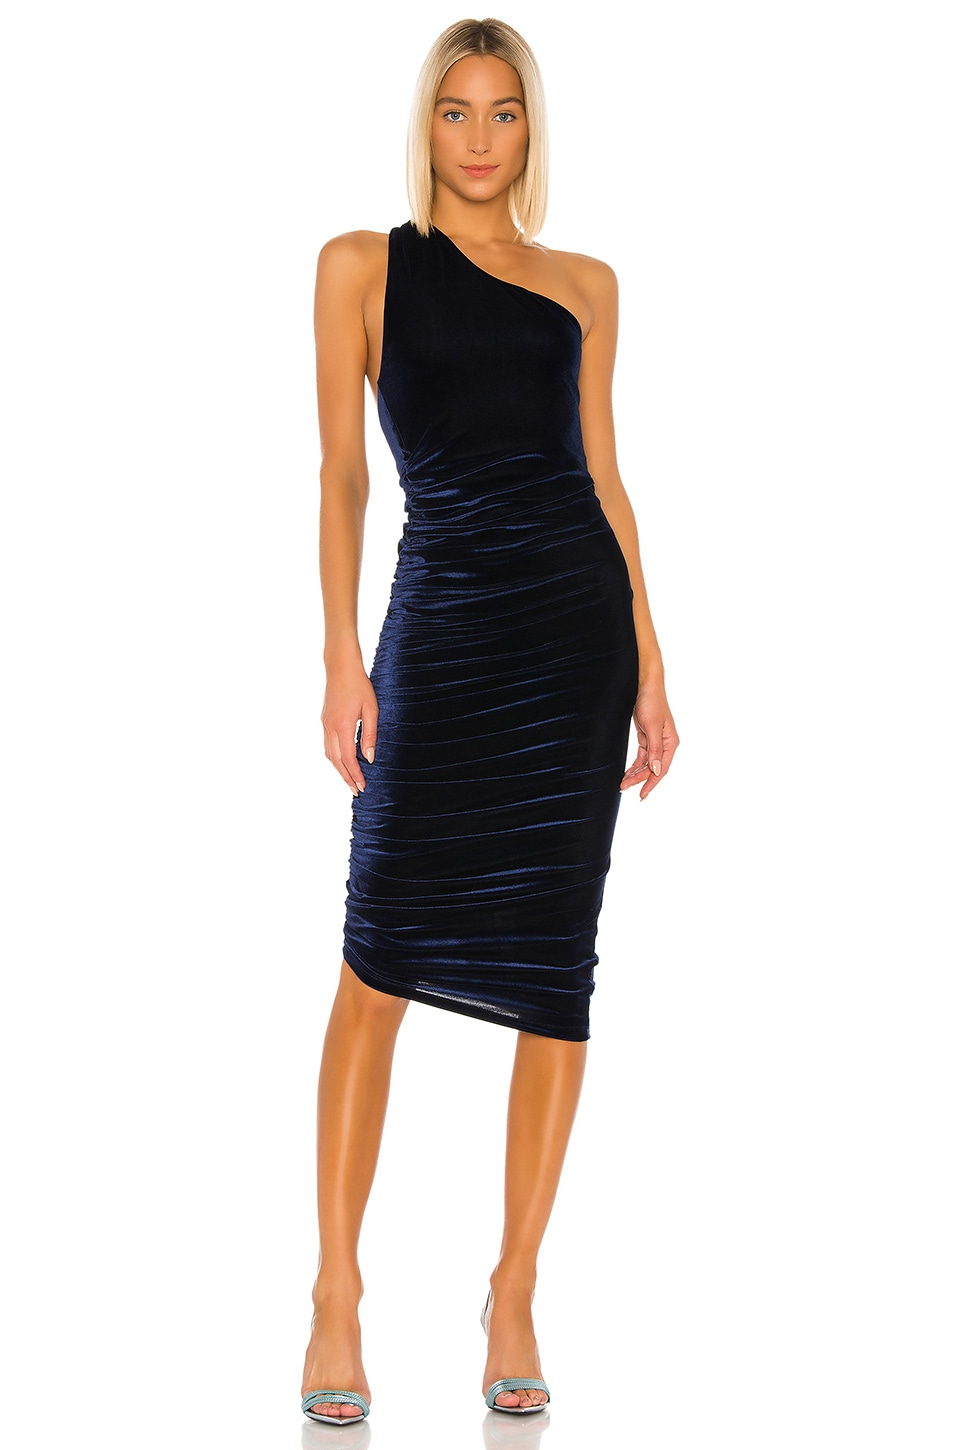 ALIX NYC Celeste Velvet Dress in Midnight